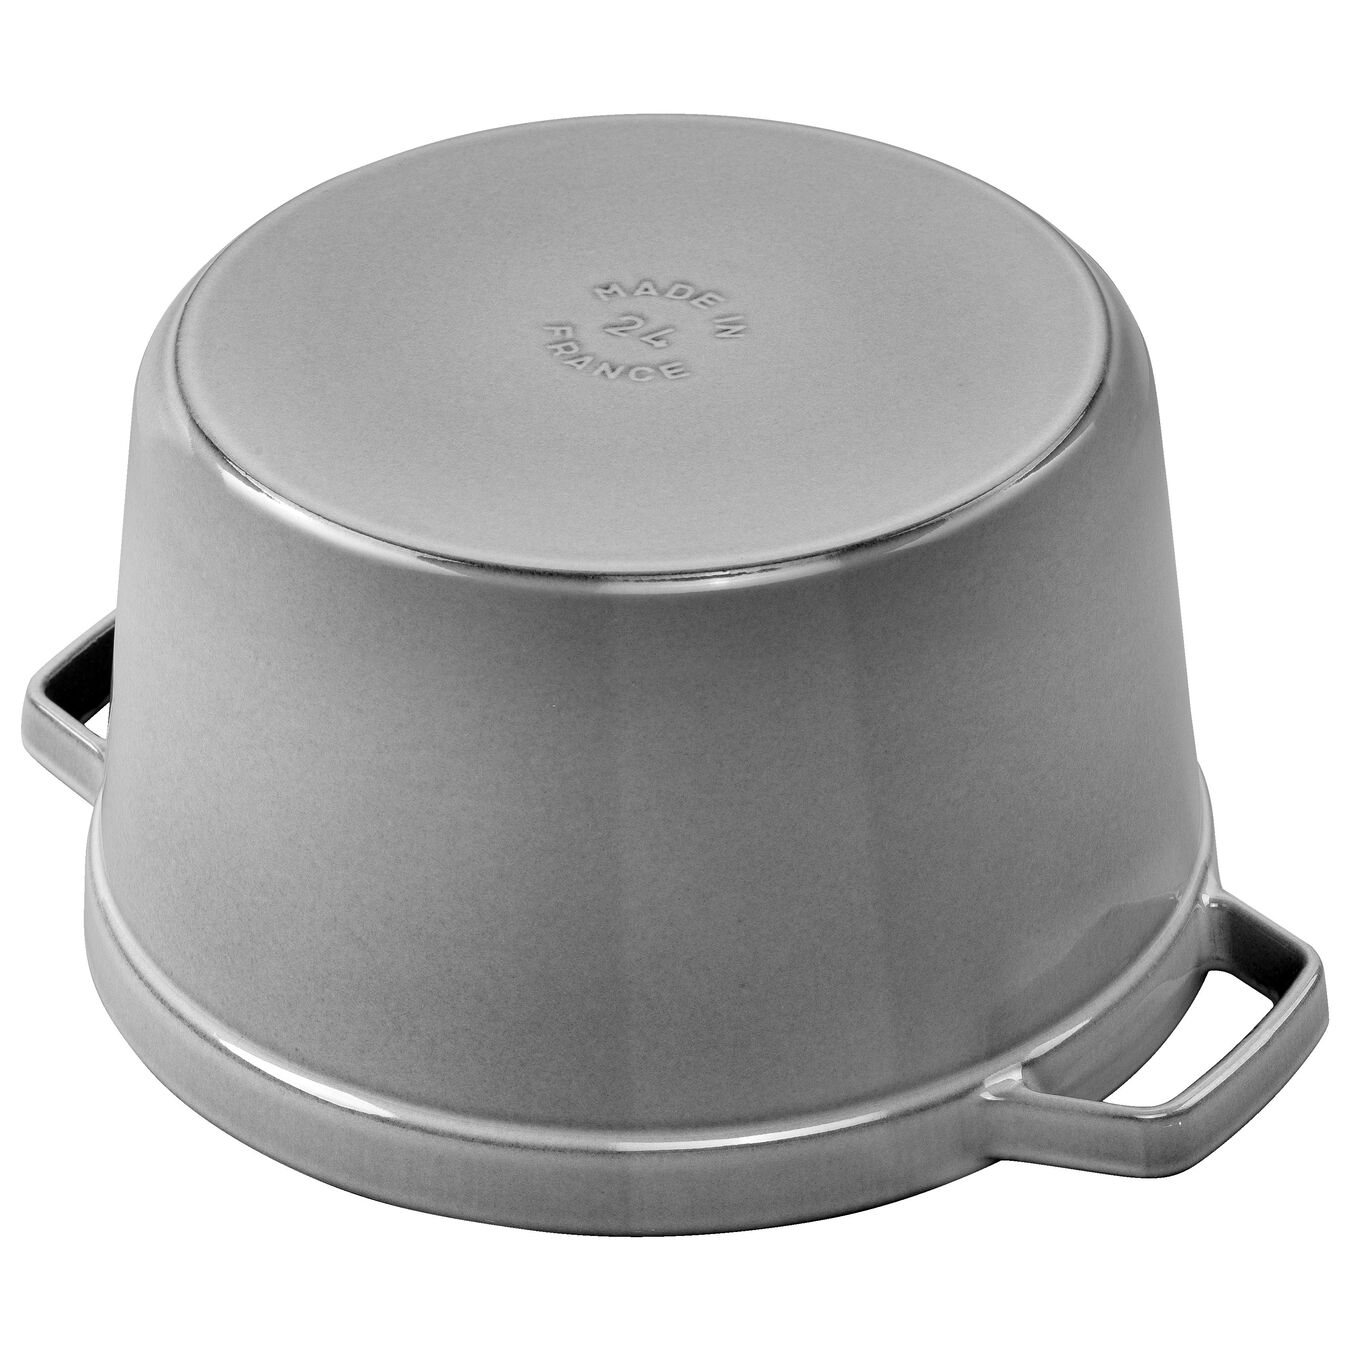 4.8 l round Tall cocotte, graphite-grey,,large 2